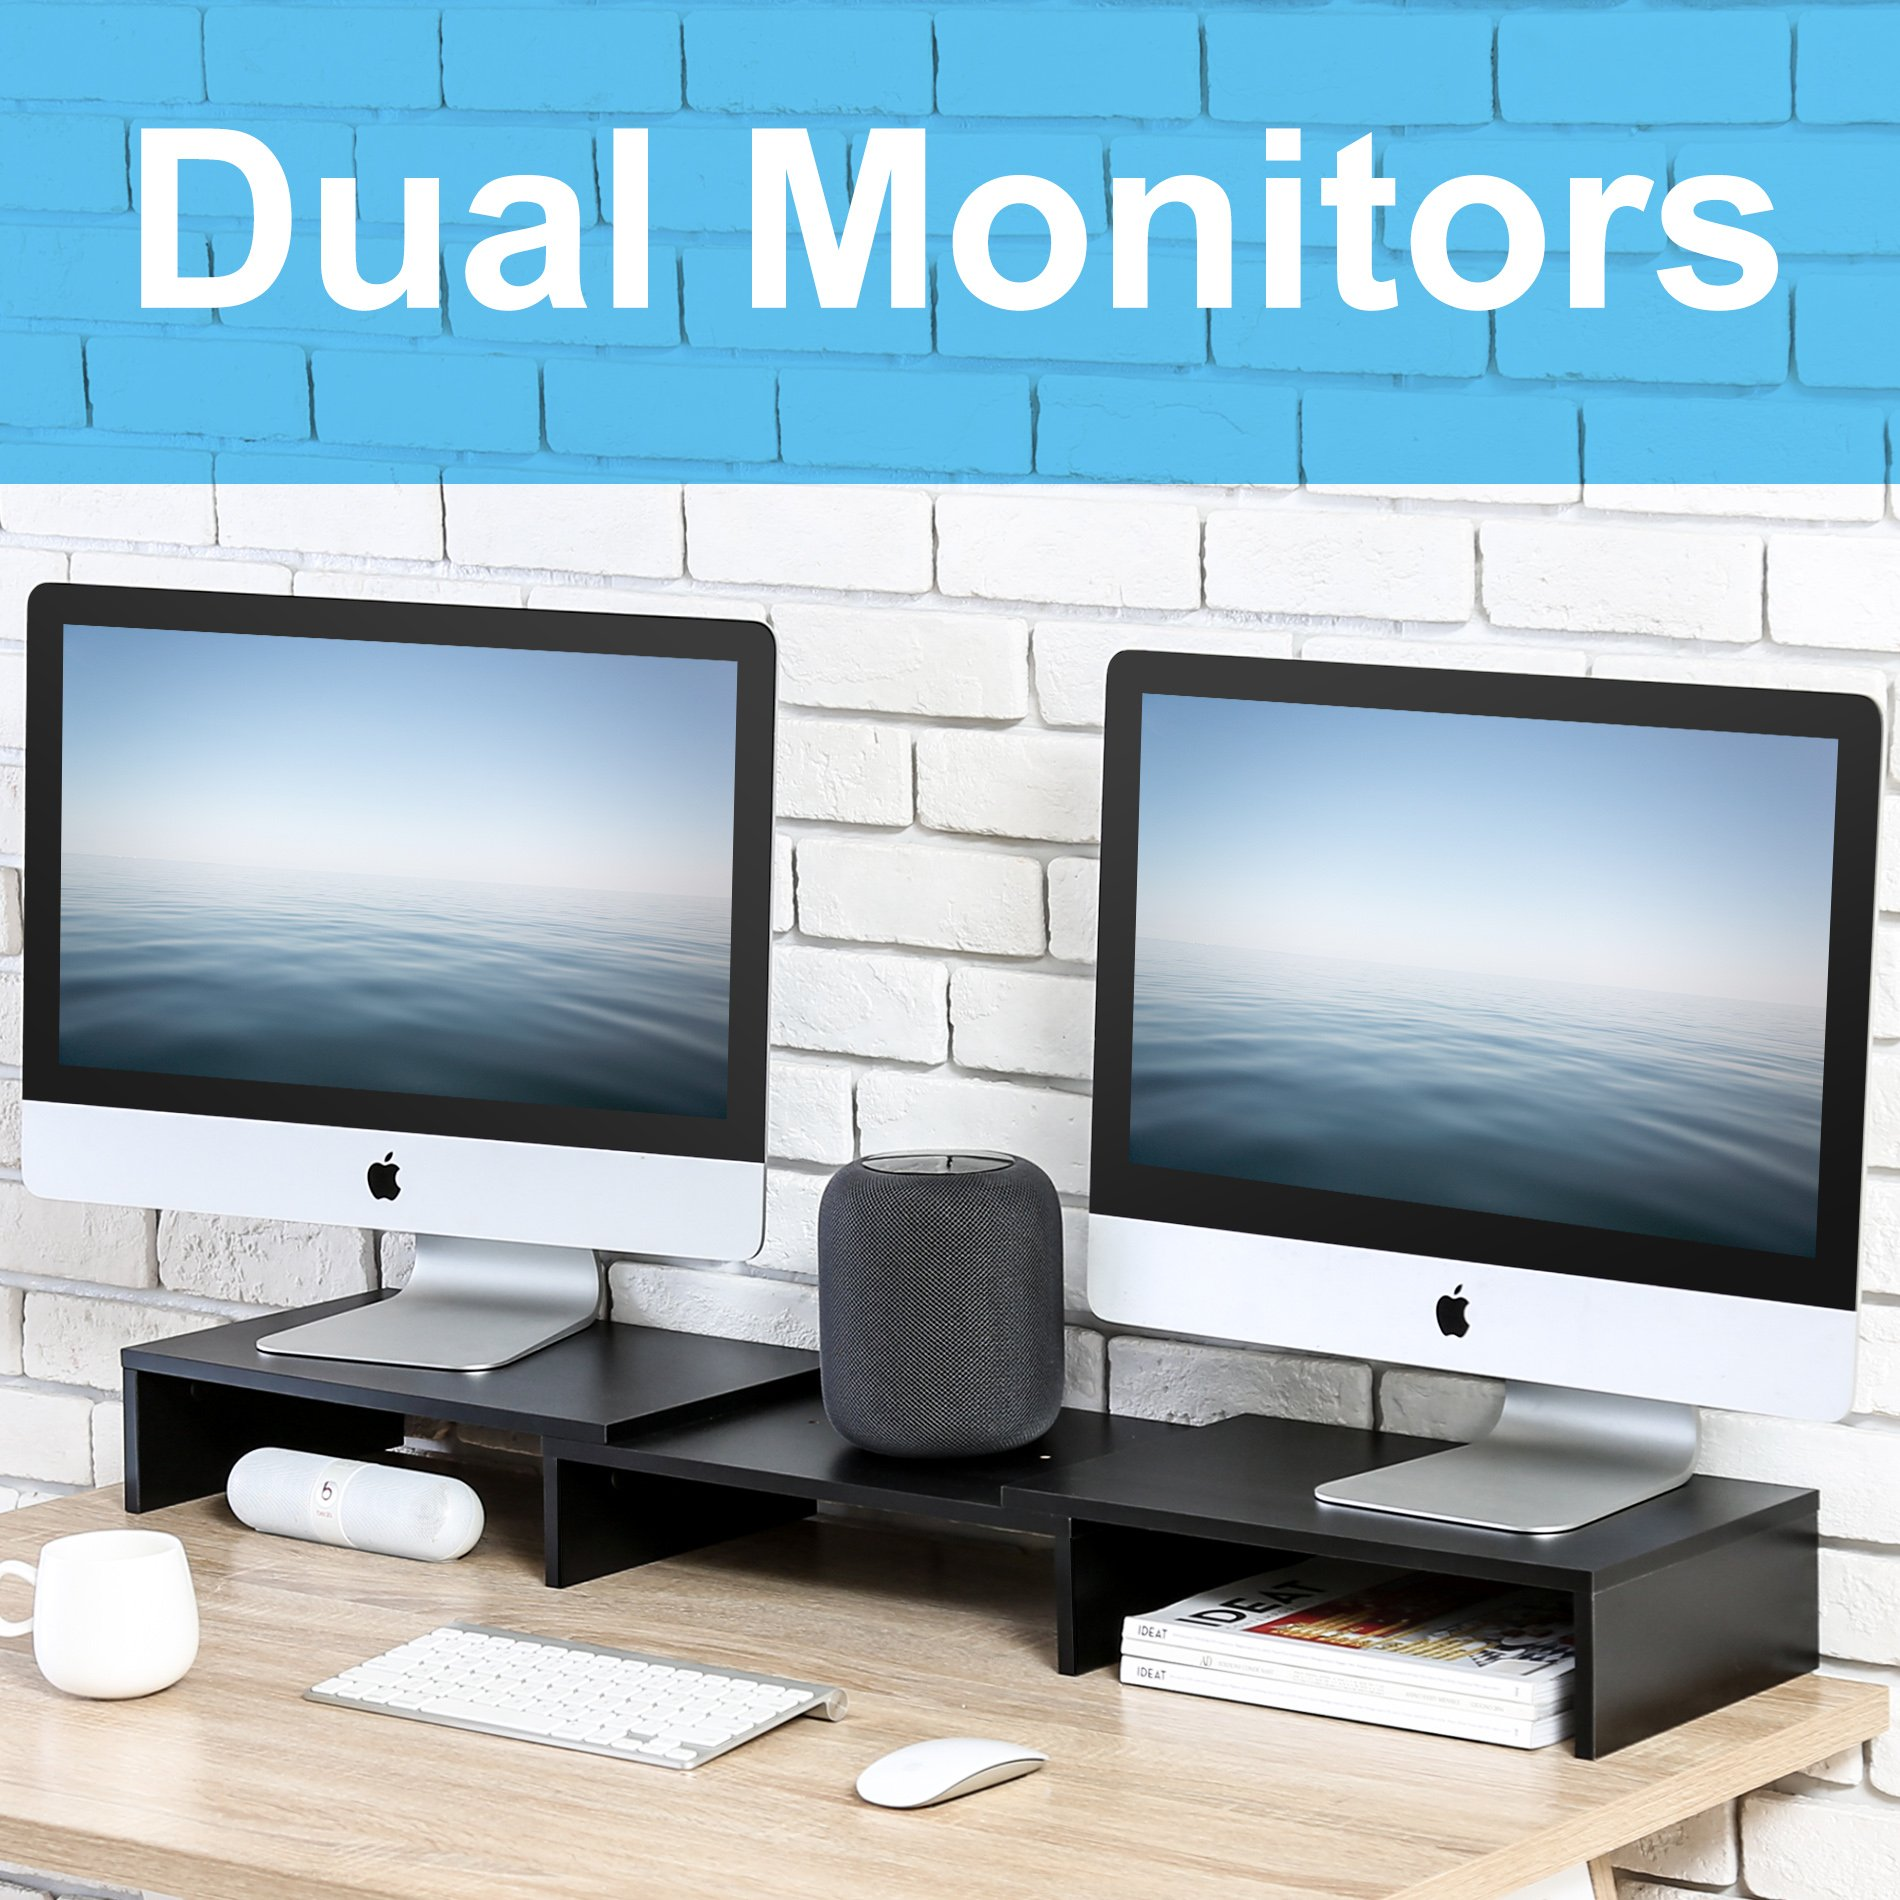 FITUEYES 3 Shelf Monitor Stand Riser with Adjustable Length and Angle,DT108001WB by FITUEYES (Image #2)